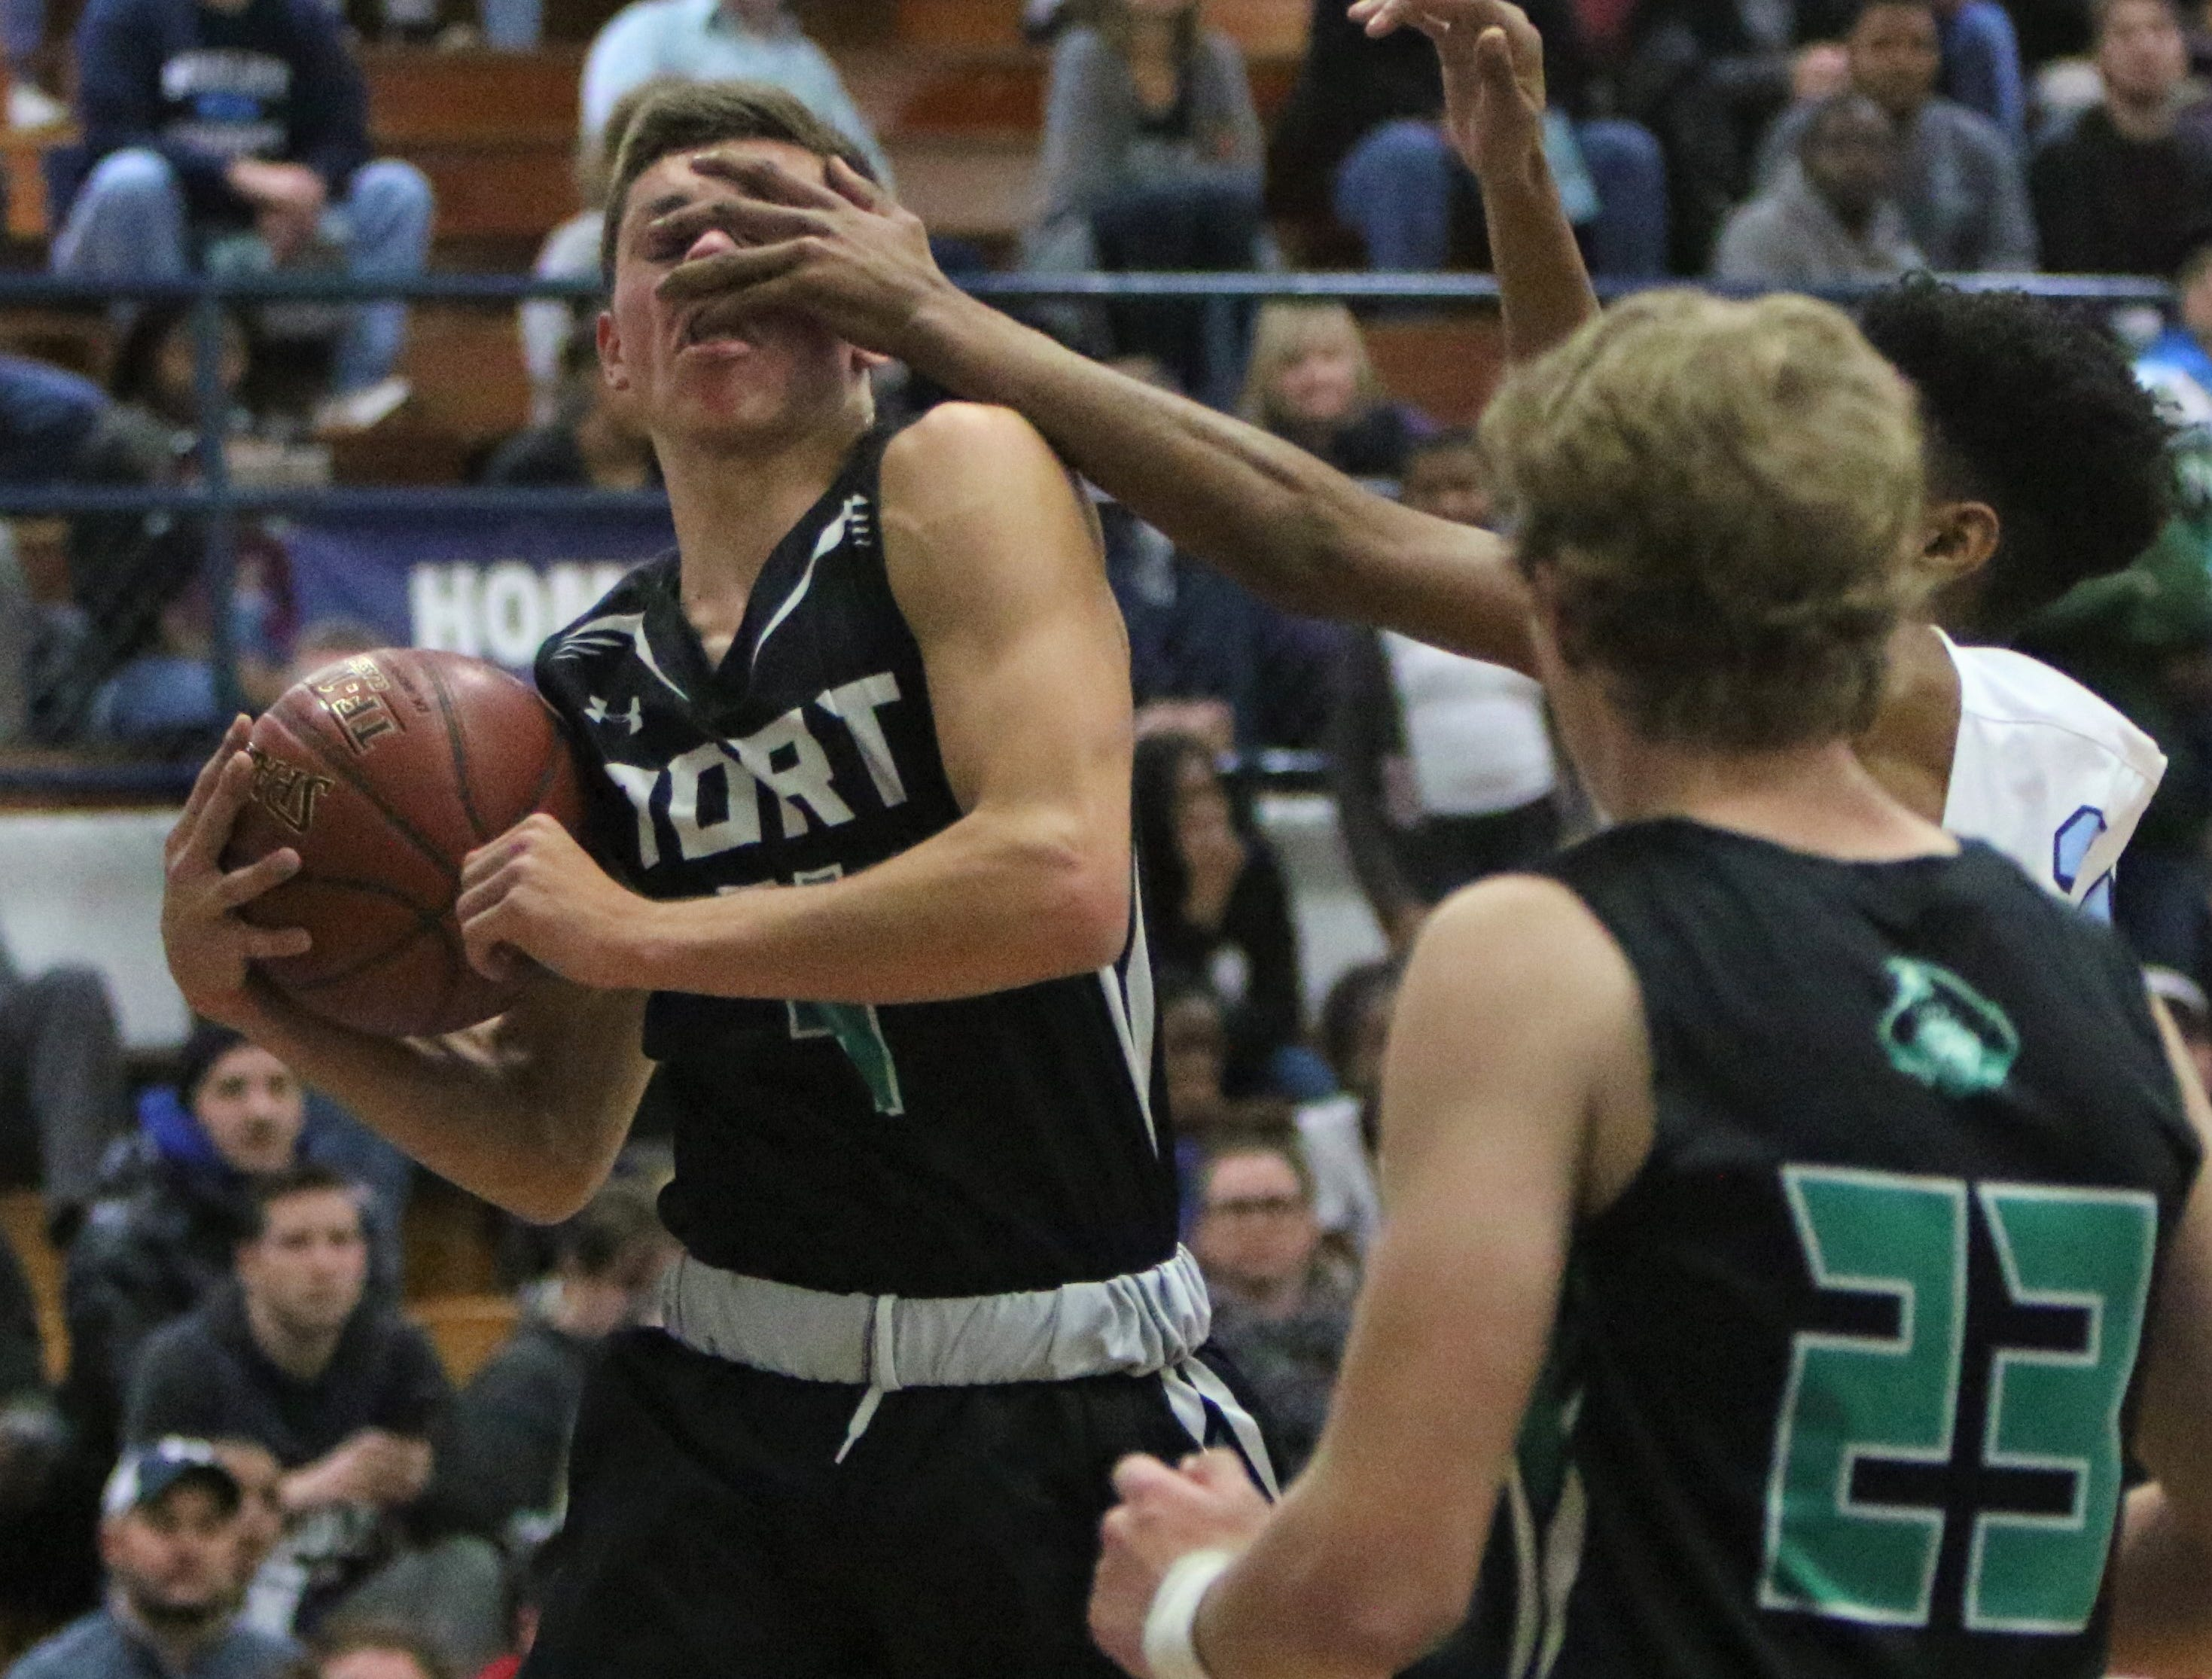 Port Washington guard Adam Baierl gets hit in the face while coming down with a rebound against Nicolet on Wednesday, Dec. 5.